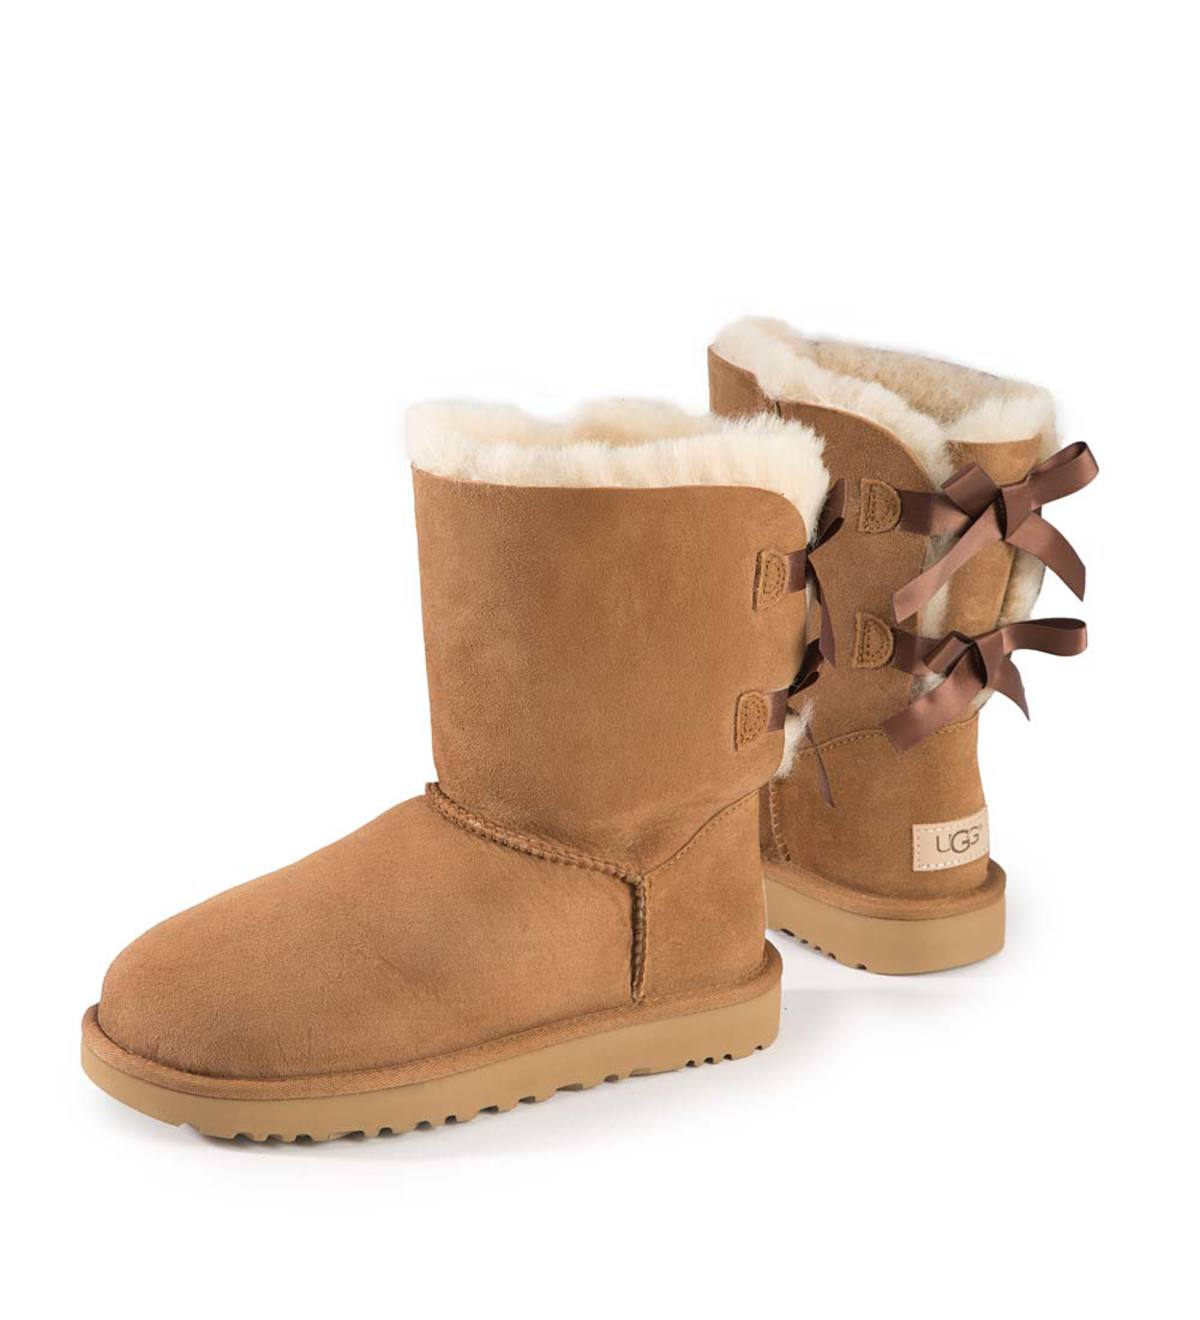 Bailey Bow II Boot - Chestnut - Size